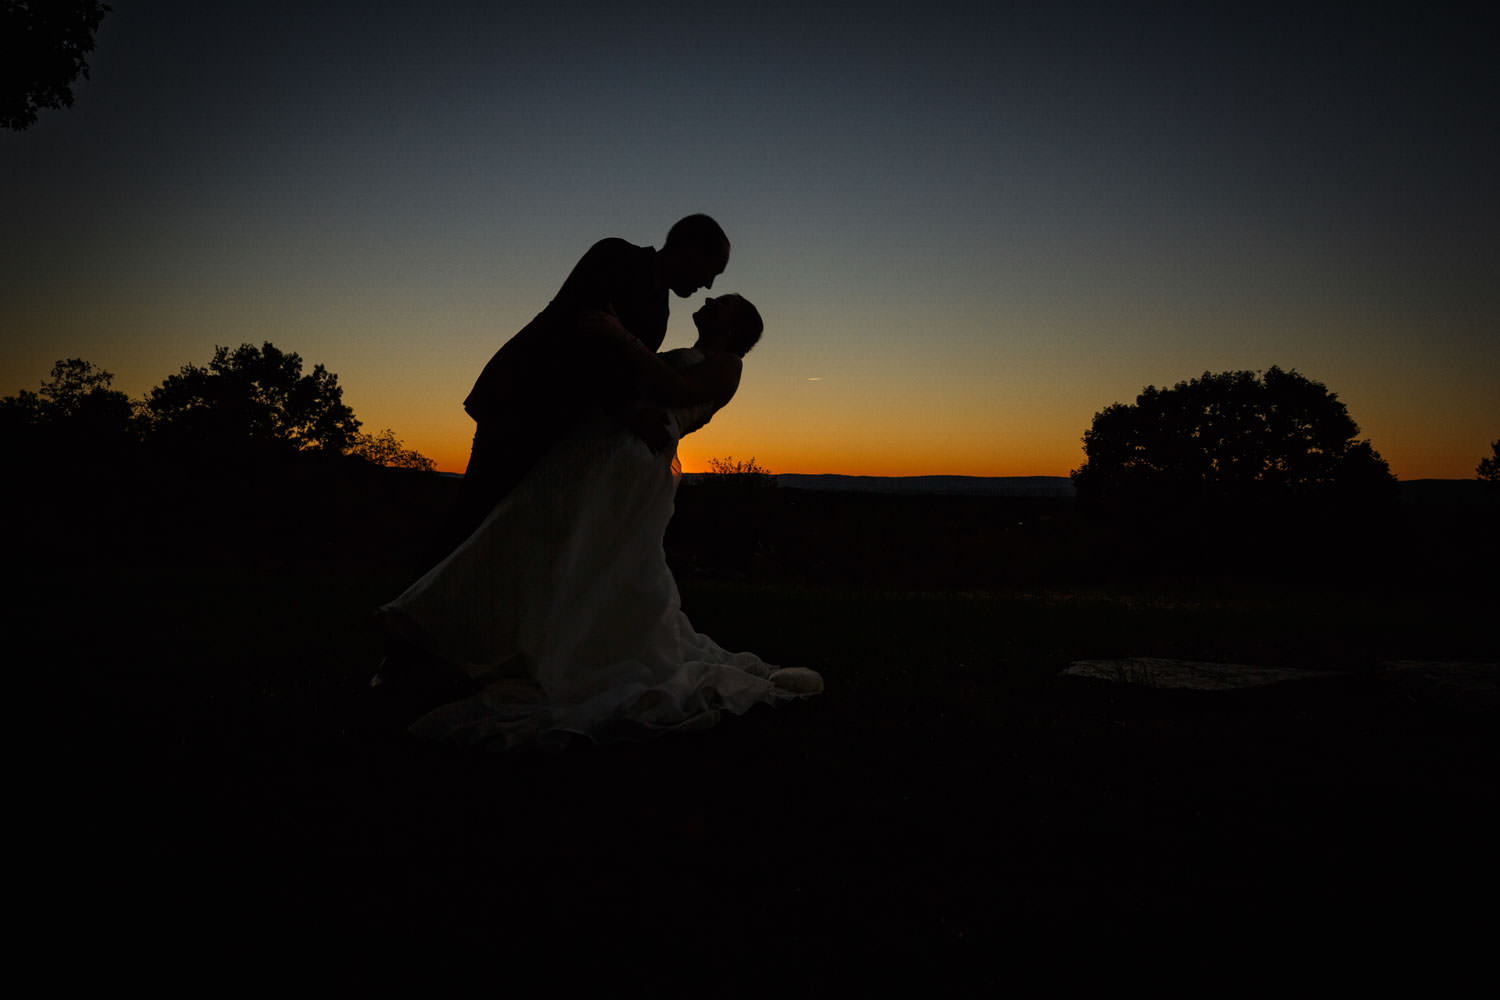 Groom dipping bride at sunset in a silhouette